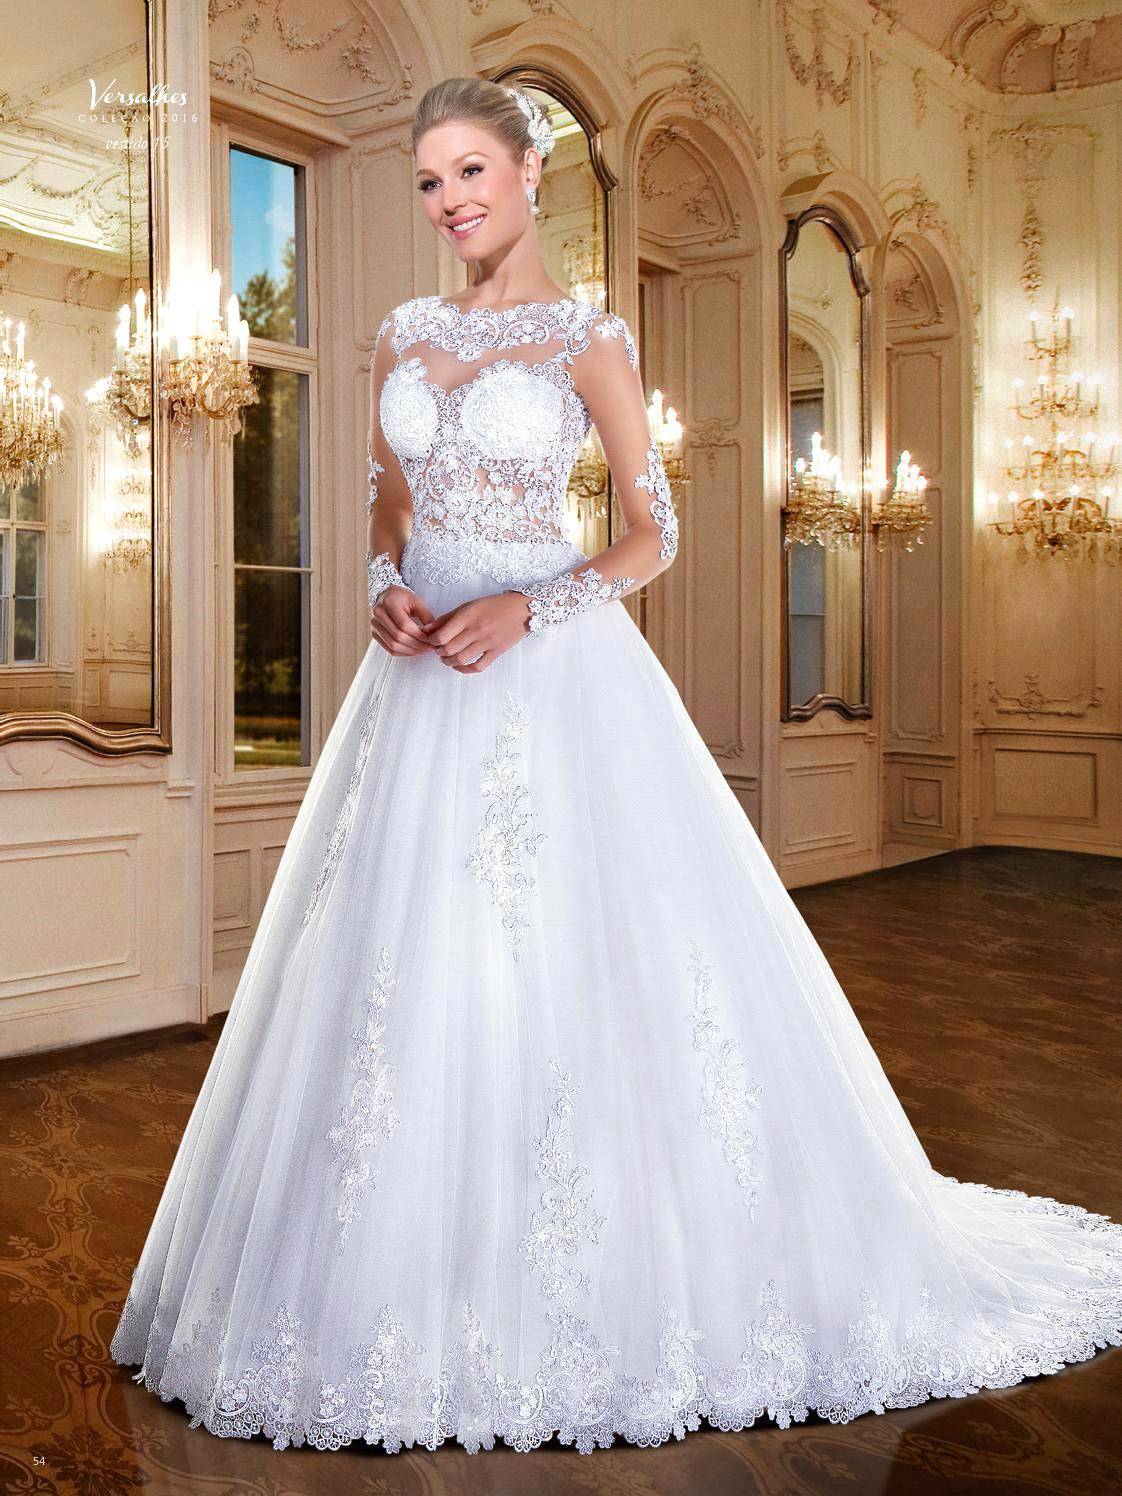 Low Back Wedding Gowns 2015, Bridesmaid Dresses 2016 Spring, Latest Wedding Gowns 2015, Top Wedding Dresses for 2015, Wedding Dresses 2015 Fall, Fall Wedding Outfits for Women, New Dress Styles for 2015, Bridesmaid Dresses 2015 Fall